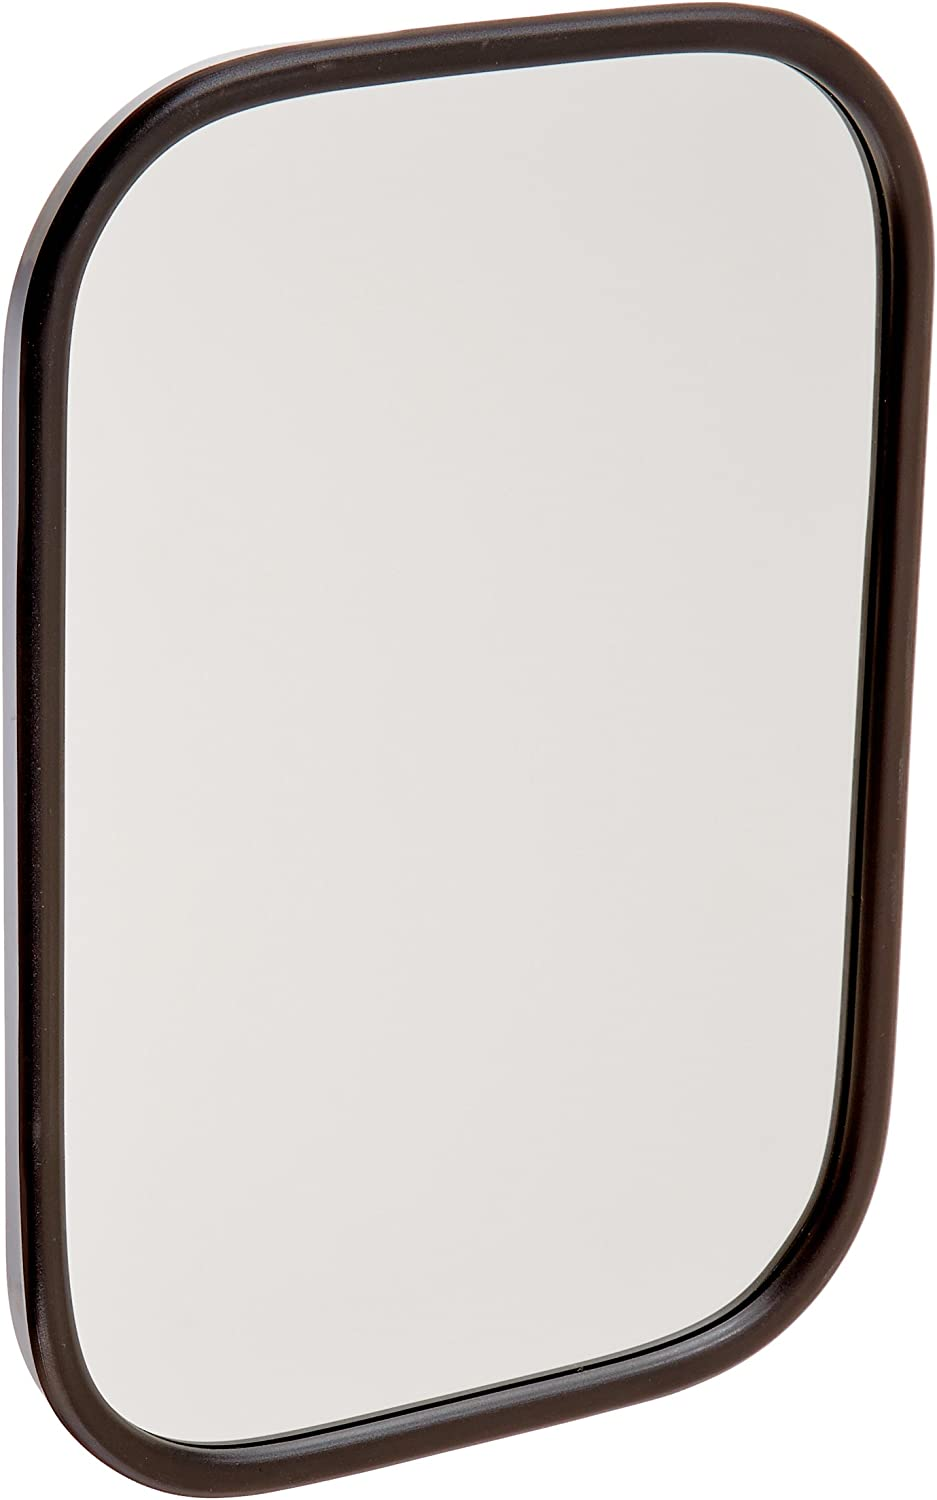 Grote 12111-5 Mirror